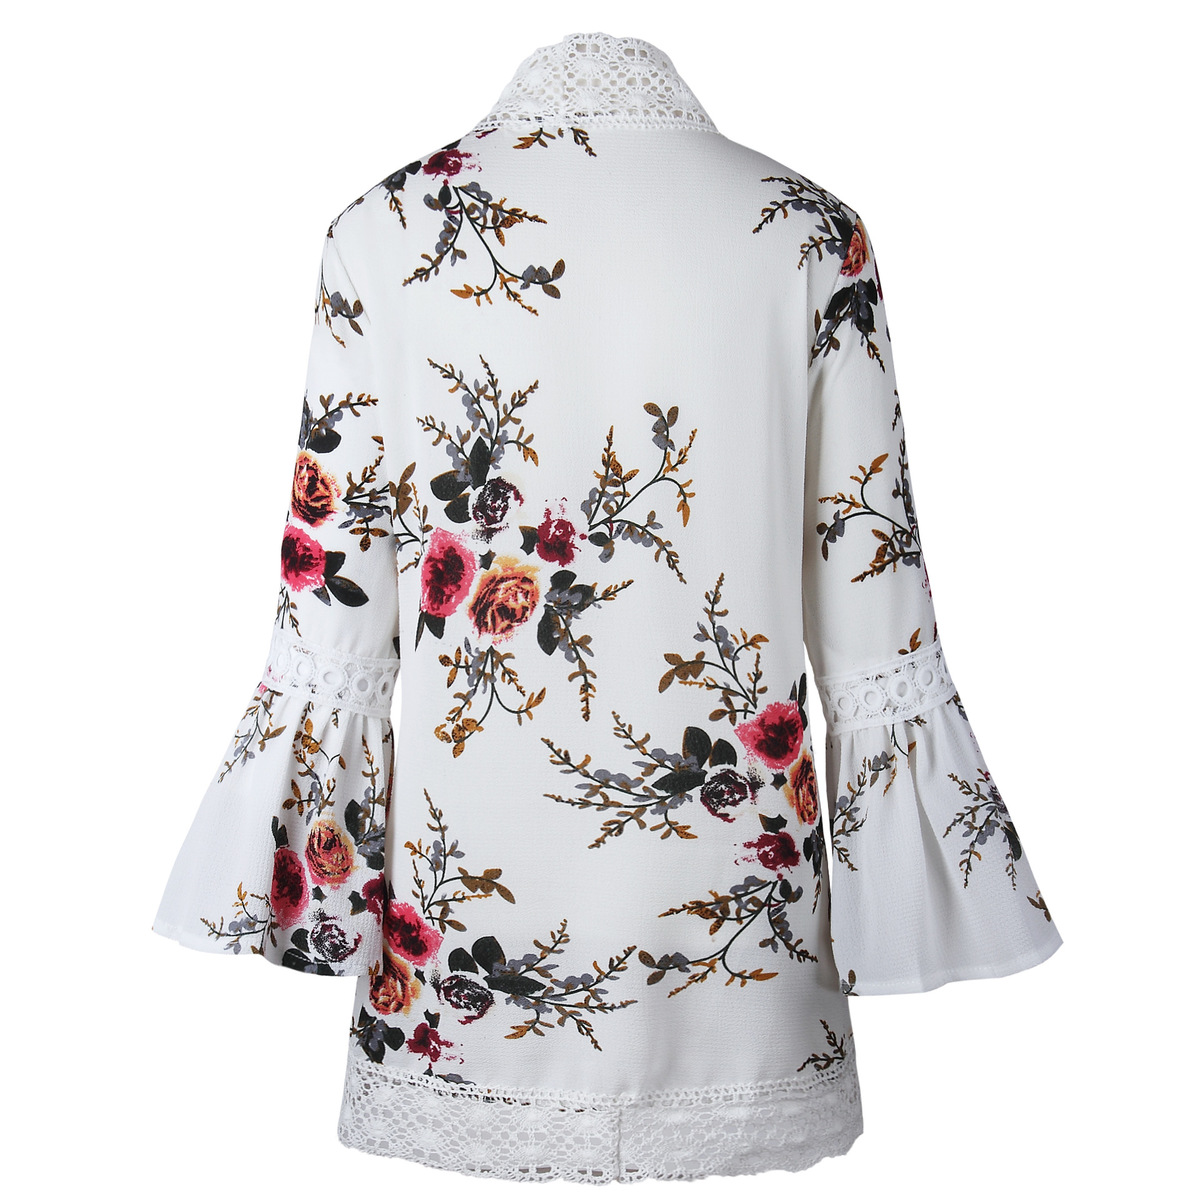 HTB1bnGivZuYBuNkSmRyq6AA3pXa7 Women Plus Size Loose Casual Basic Jackets Female 2018 Autumn Long Flare Sleeve Floral Print Outwear Coat Open Stitch Clothing